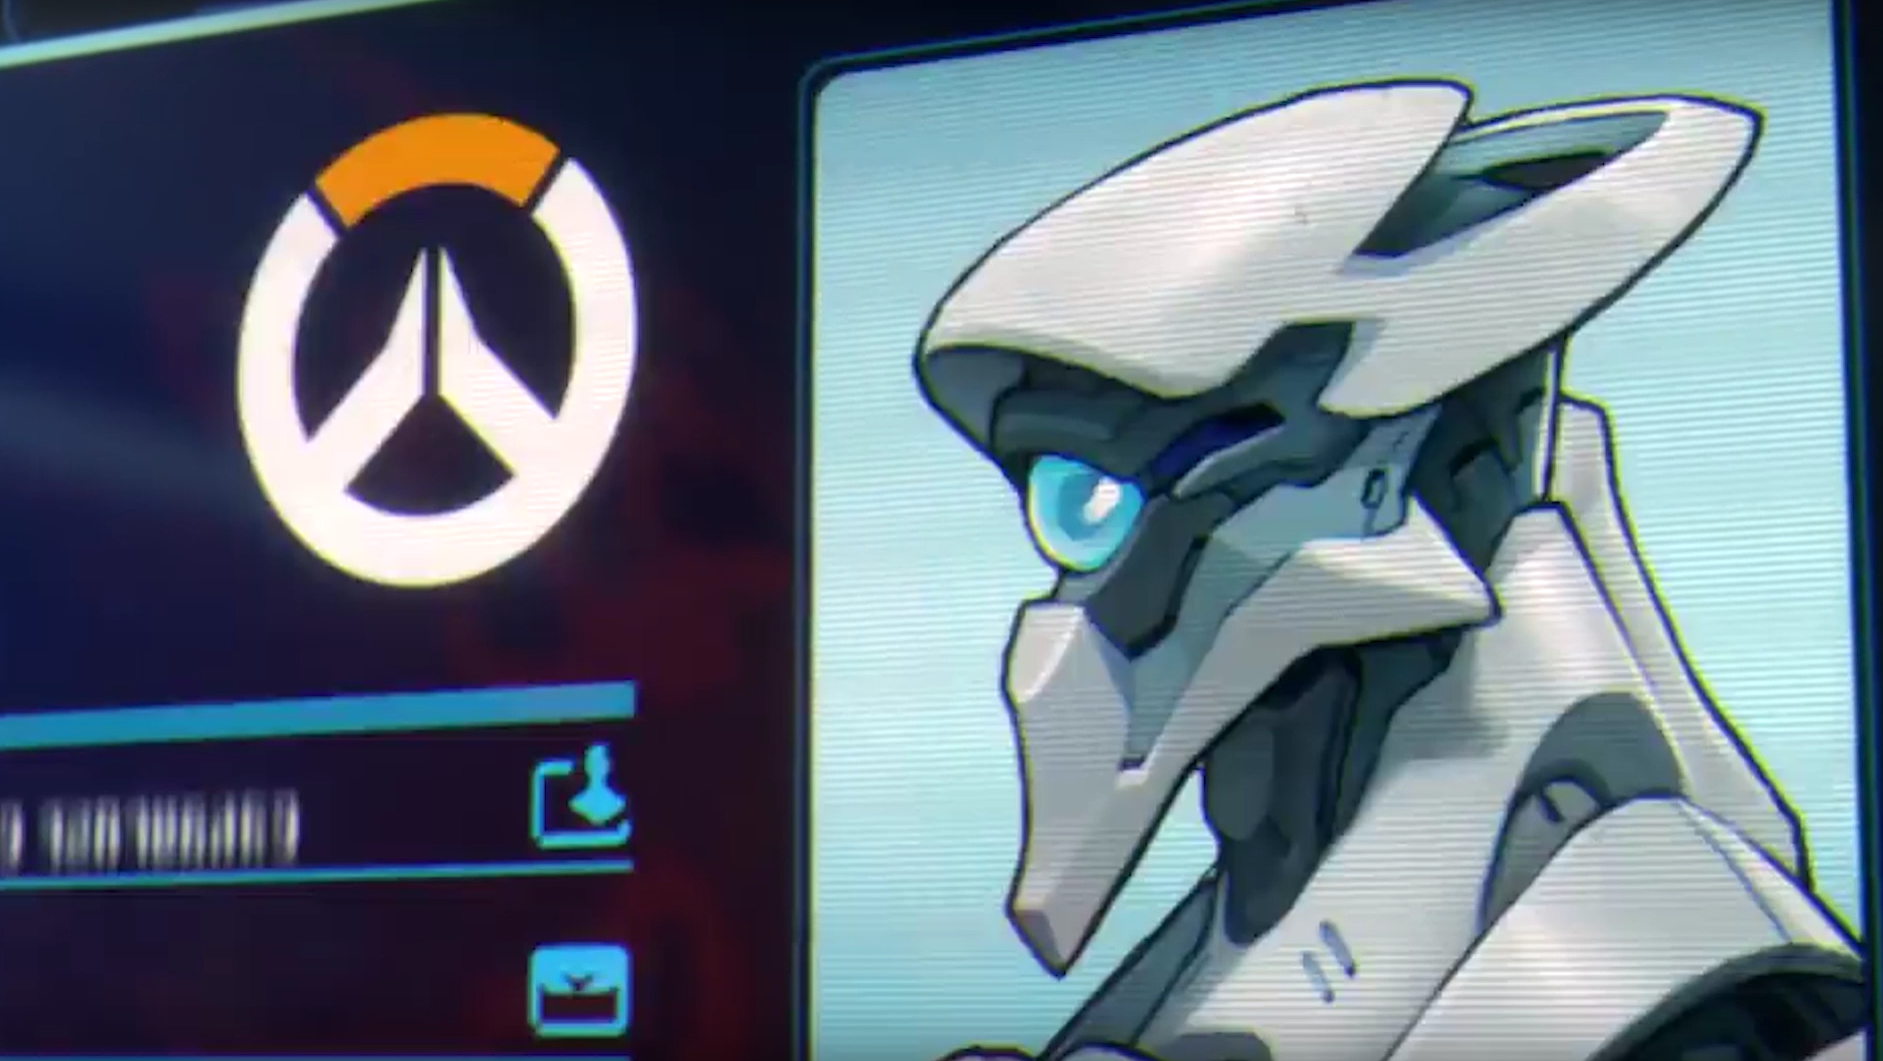 Omnic Overwatch Hero in Recall Short - Possibly Athena